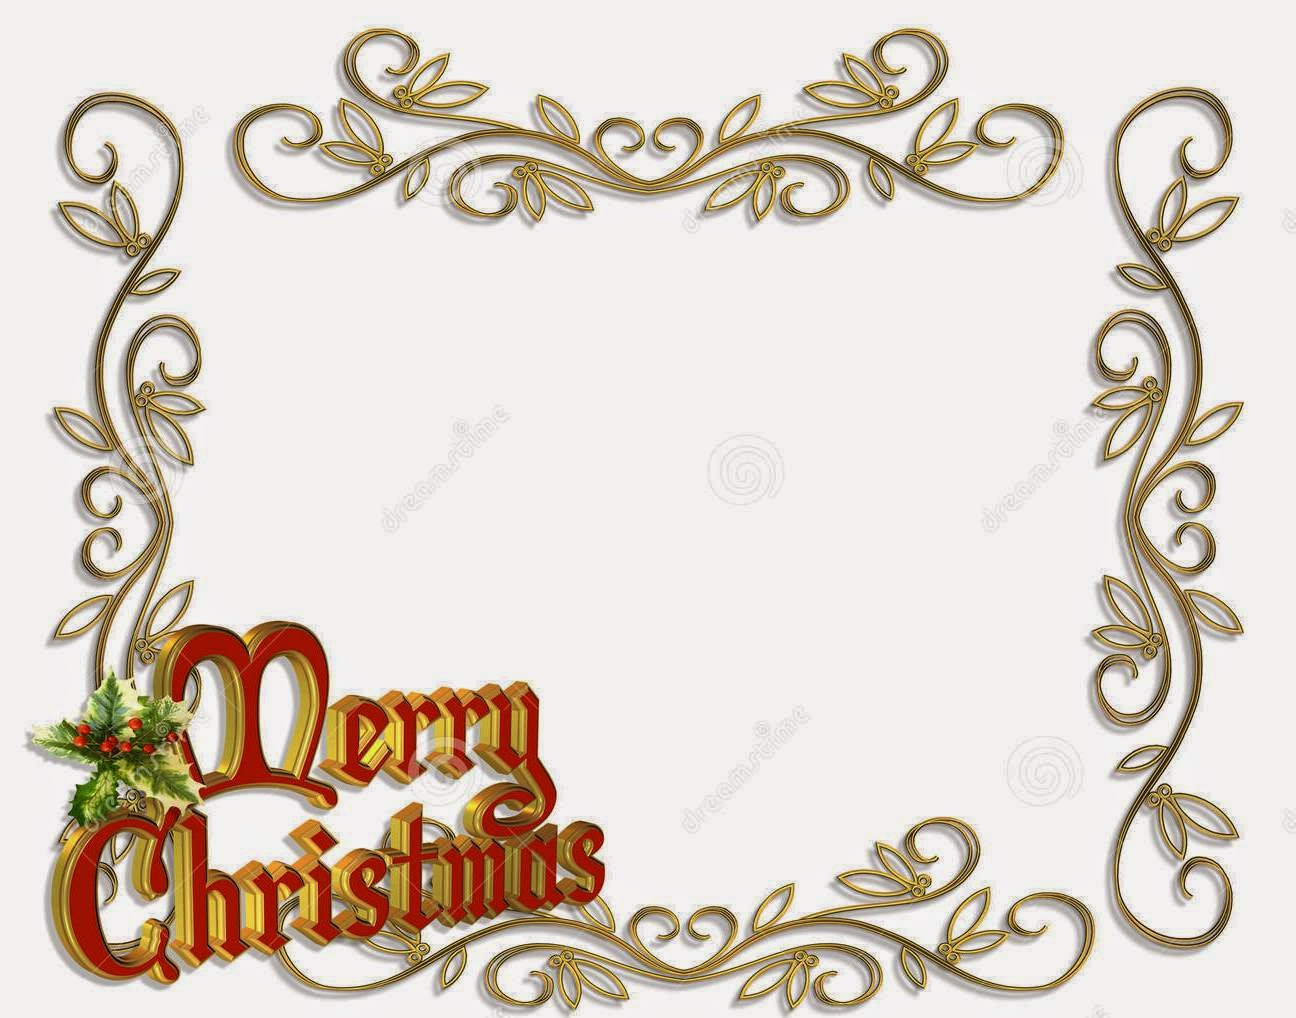 Merry Christmas 2015 Photo Frame  Free download